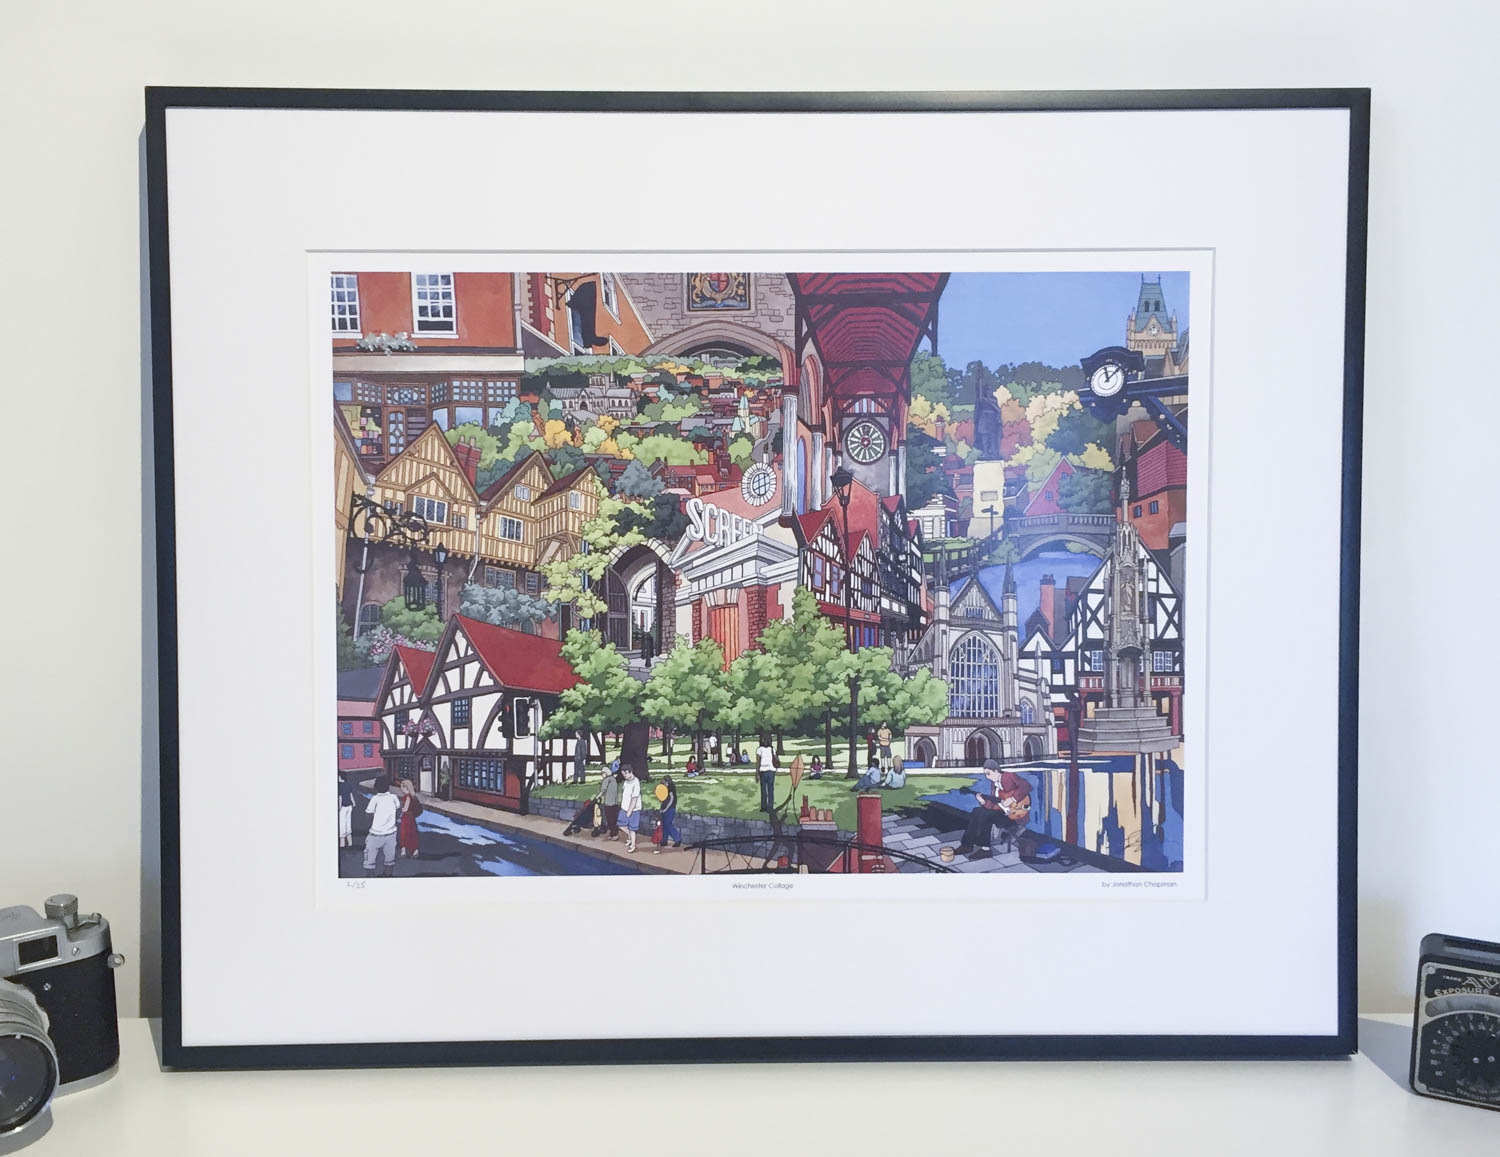 Winchester Collage Limited Edition Print by Jonathan Chapman